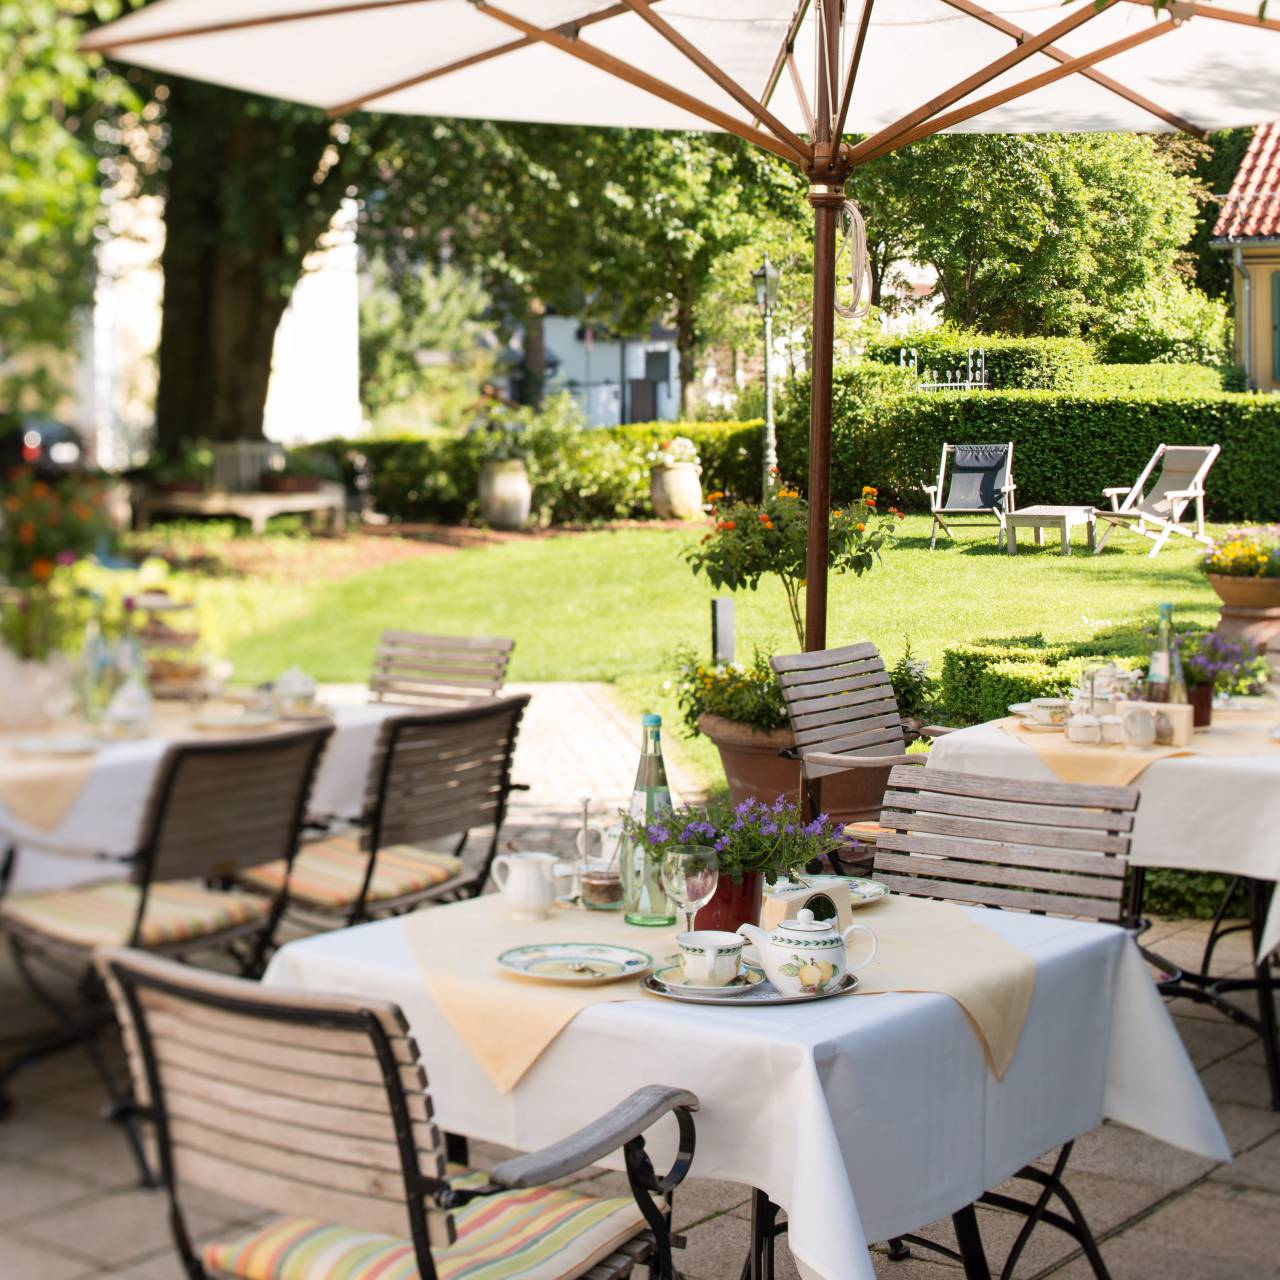 Terrace in Hotel Seitner Hof in Pullach in the Isar Valley